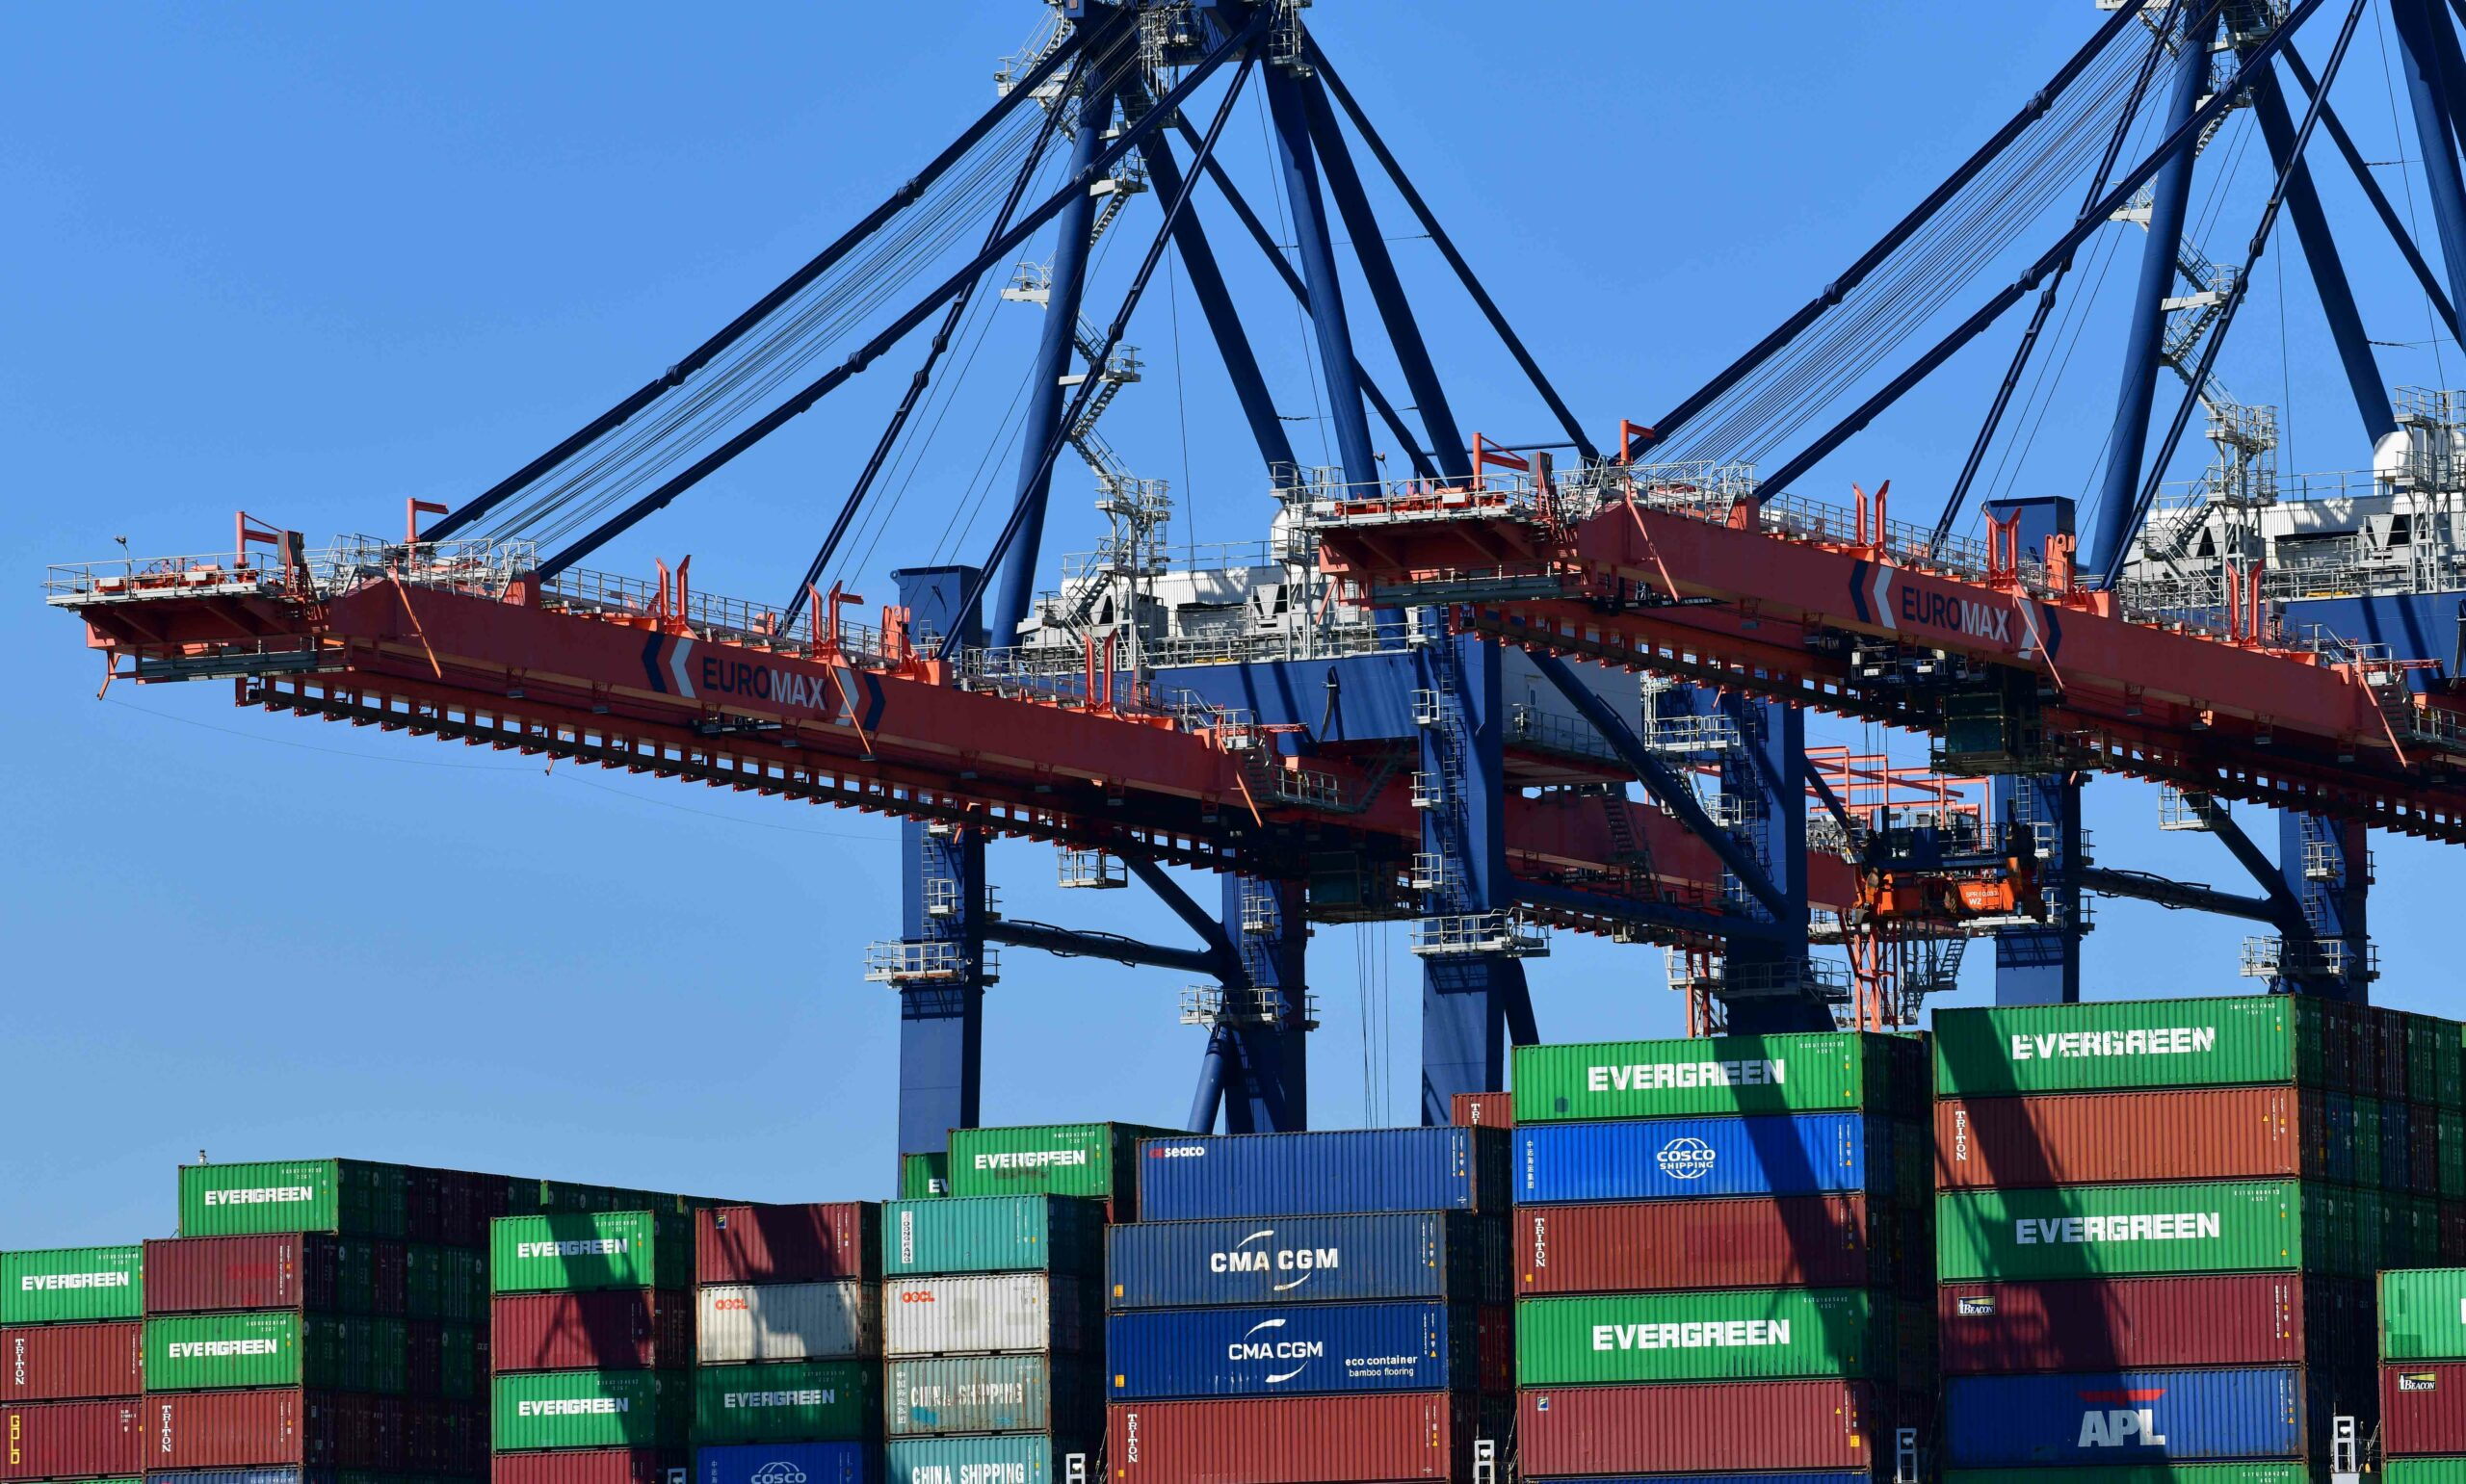 1.9 million teu of capacity heading to swamp ports after Suez Canal blockage Atlas Logistic network